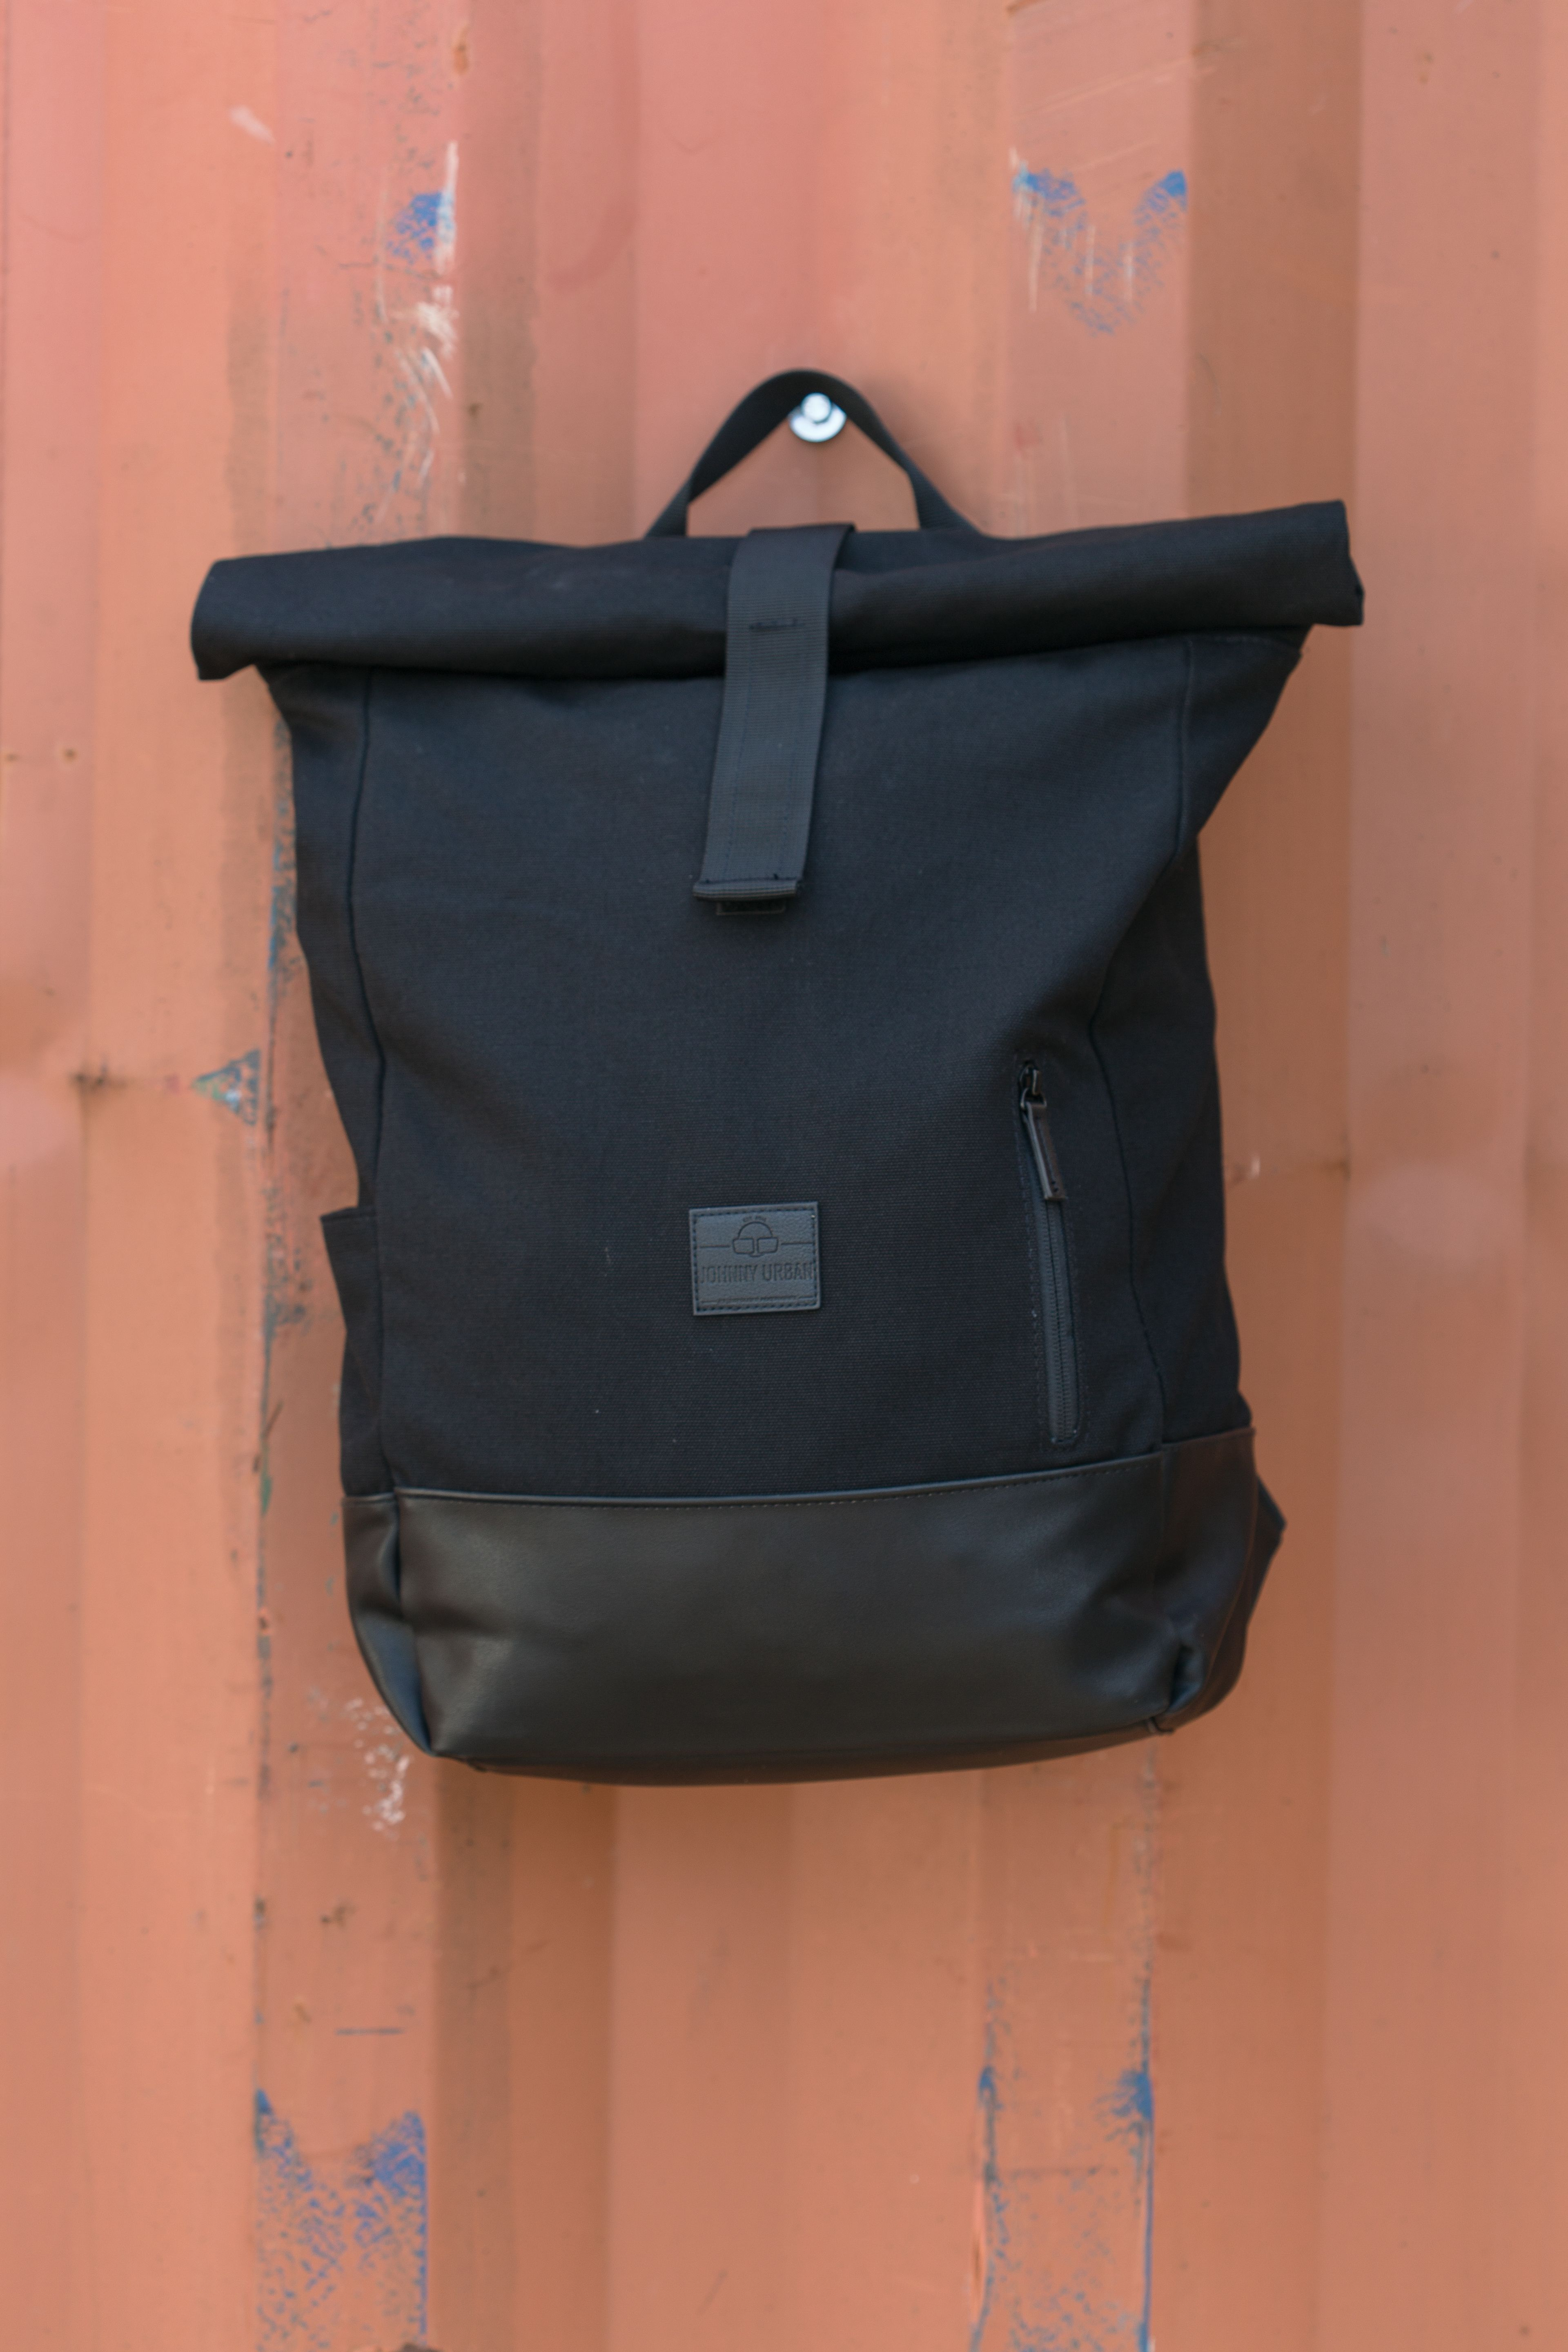 9f09271645 Canvas roll top backpack black for men   woman. Perfect companion for  school